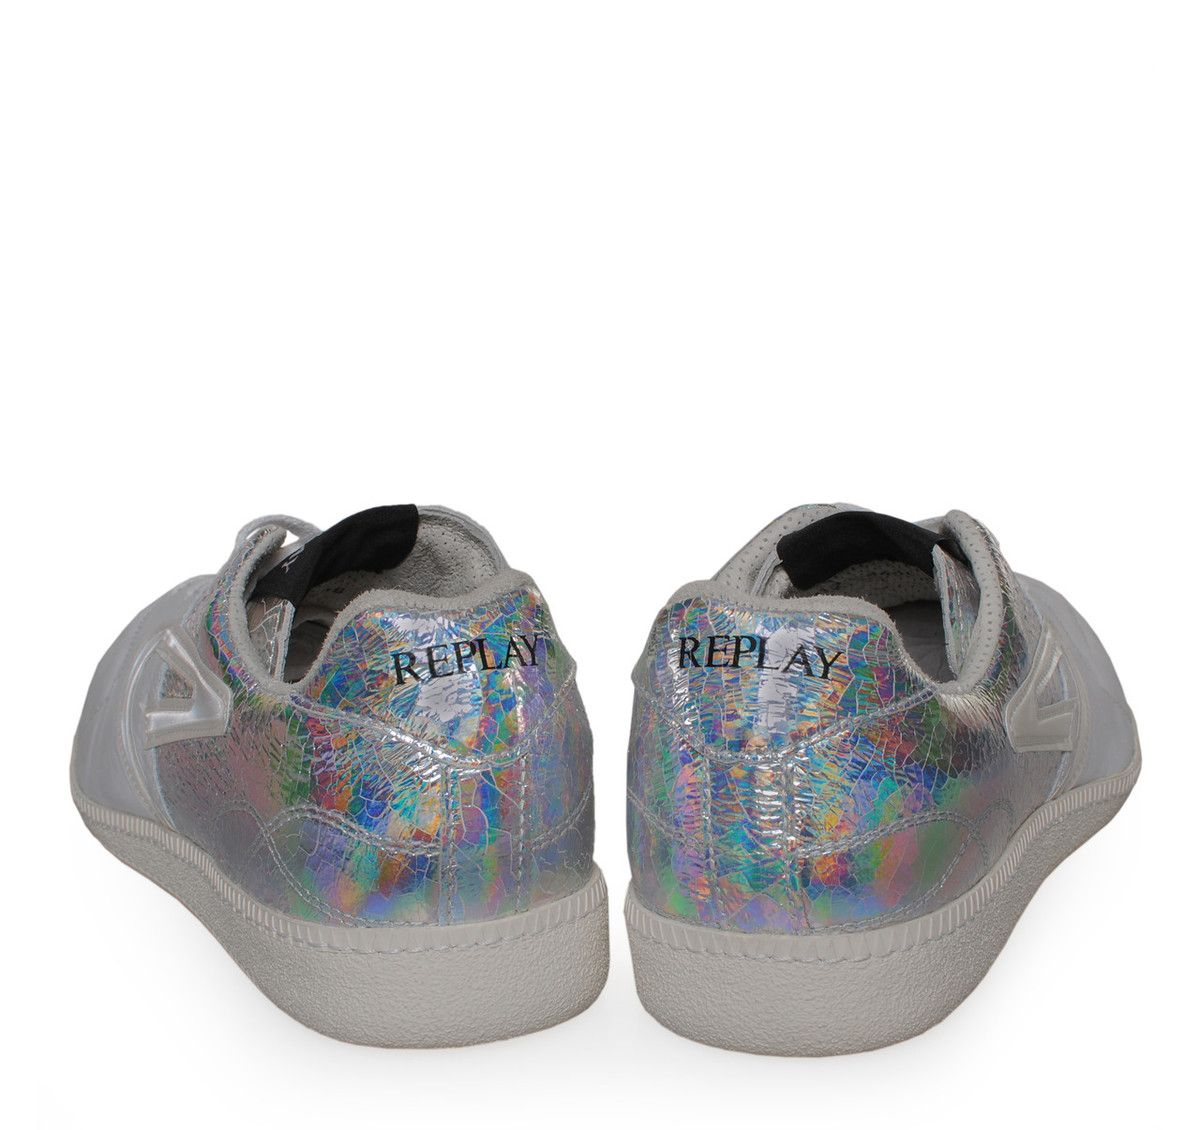 REPLAY White Silver Leather Textile Low-cut Sneakers with Laces. Ανδρικά  λευκά fa2a314d16c